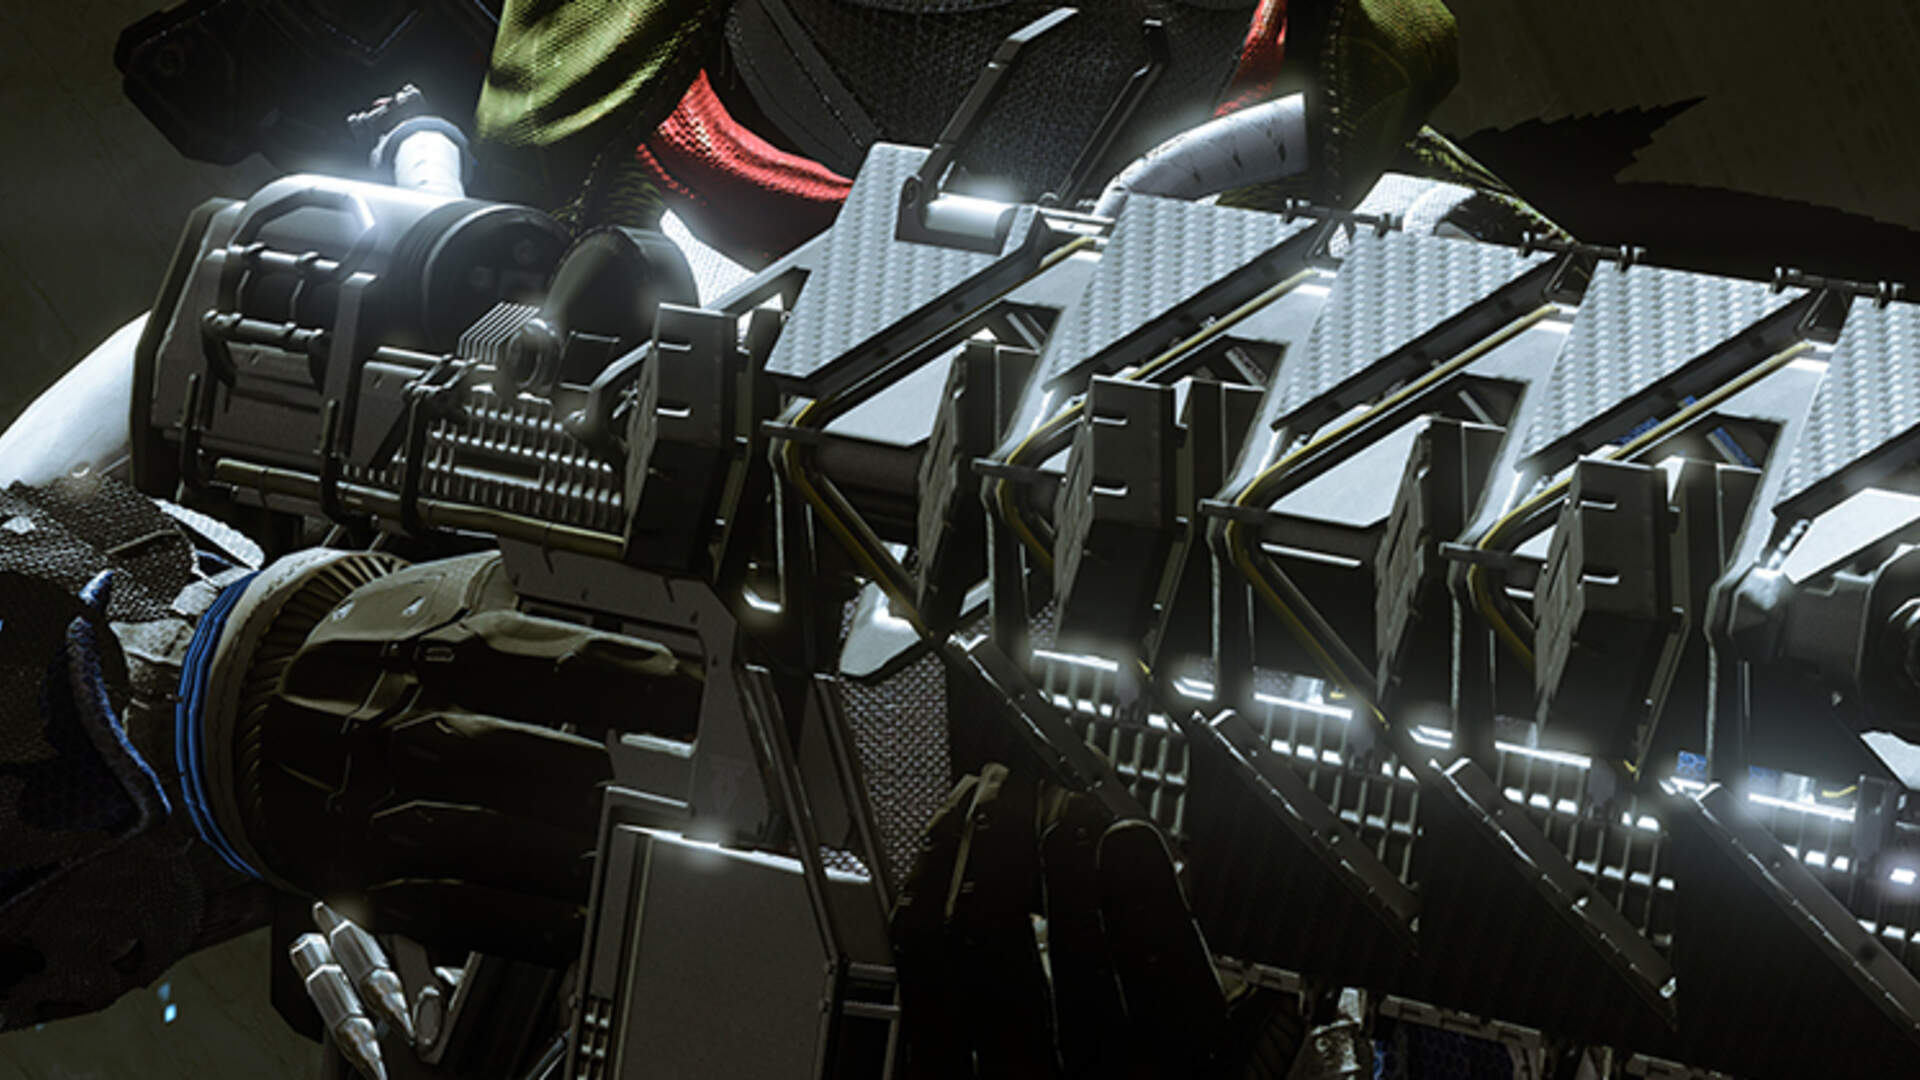 Destiny: The Taken King - How to Get the Sleeper Simulant